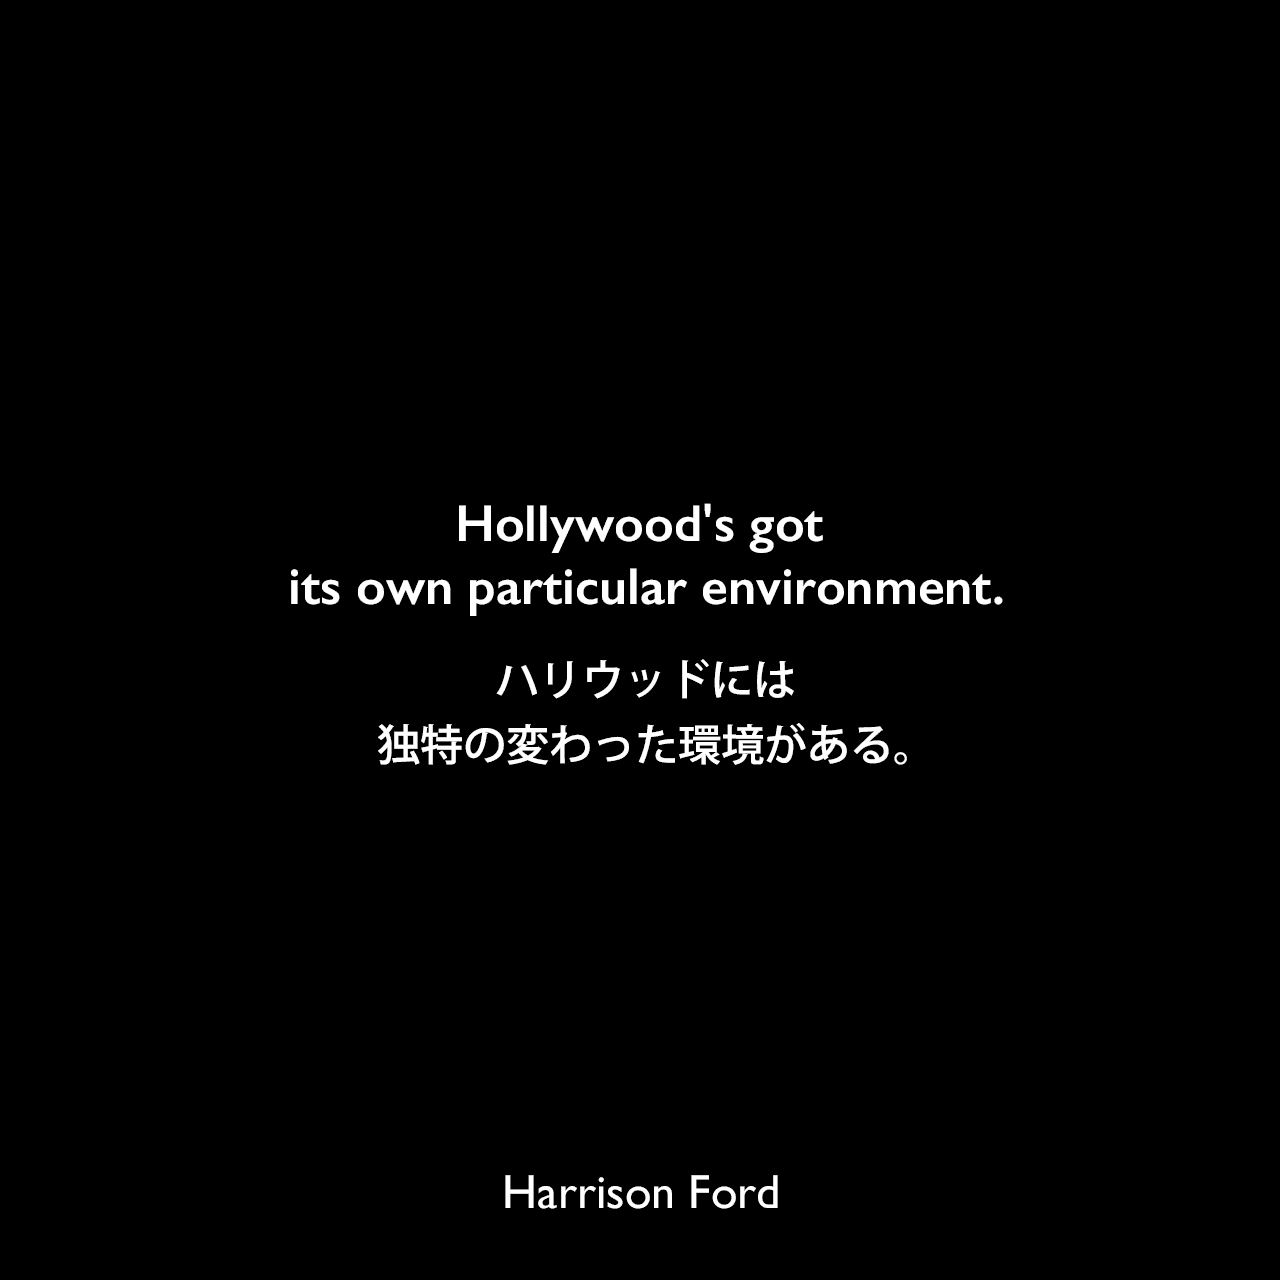 Hollywood's got its own particular environment.ハリウッドには独特の変わった環境がある。Harrison Ford